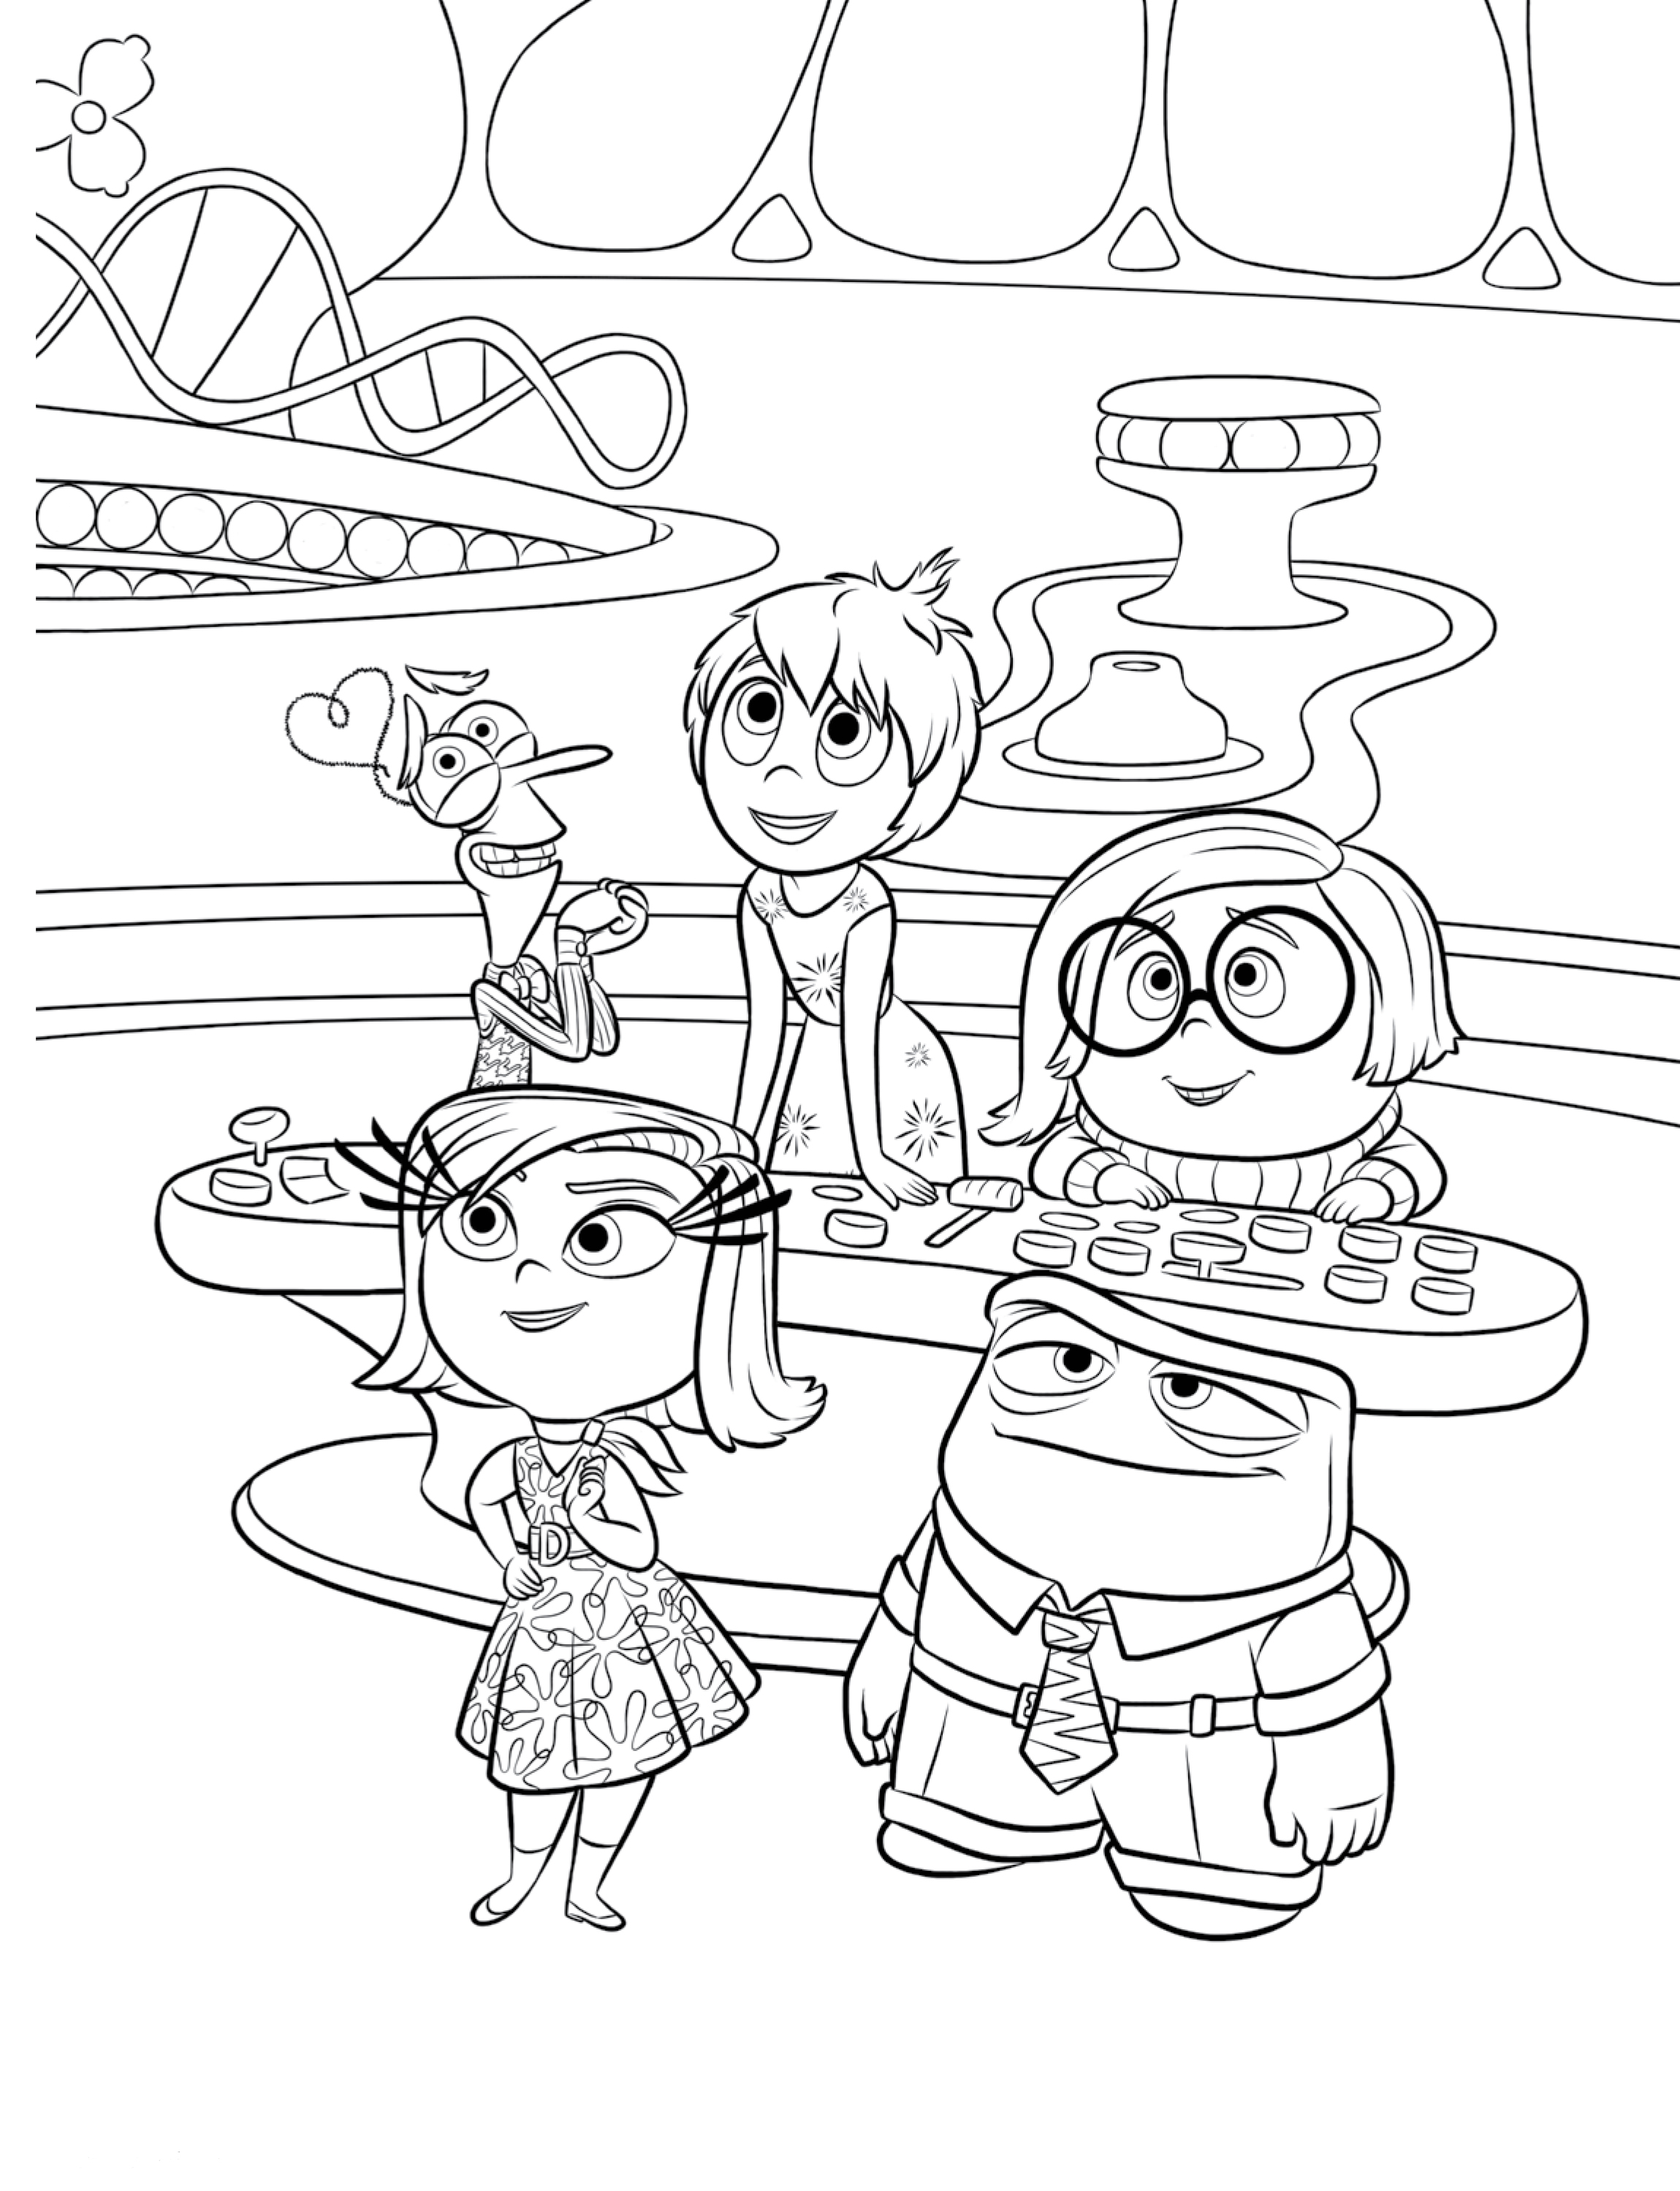 Inside out coloring pages best coloring pages for kids for Best coloring pages for kids